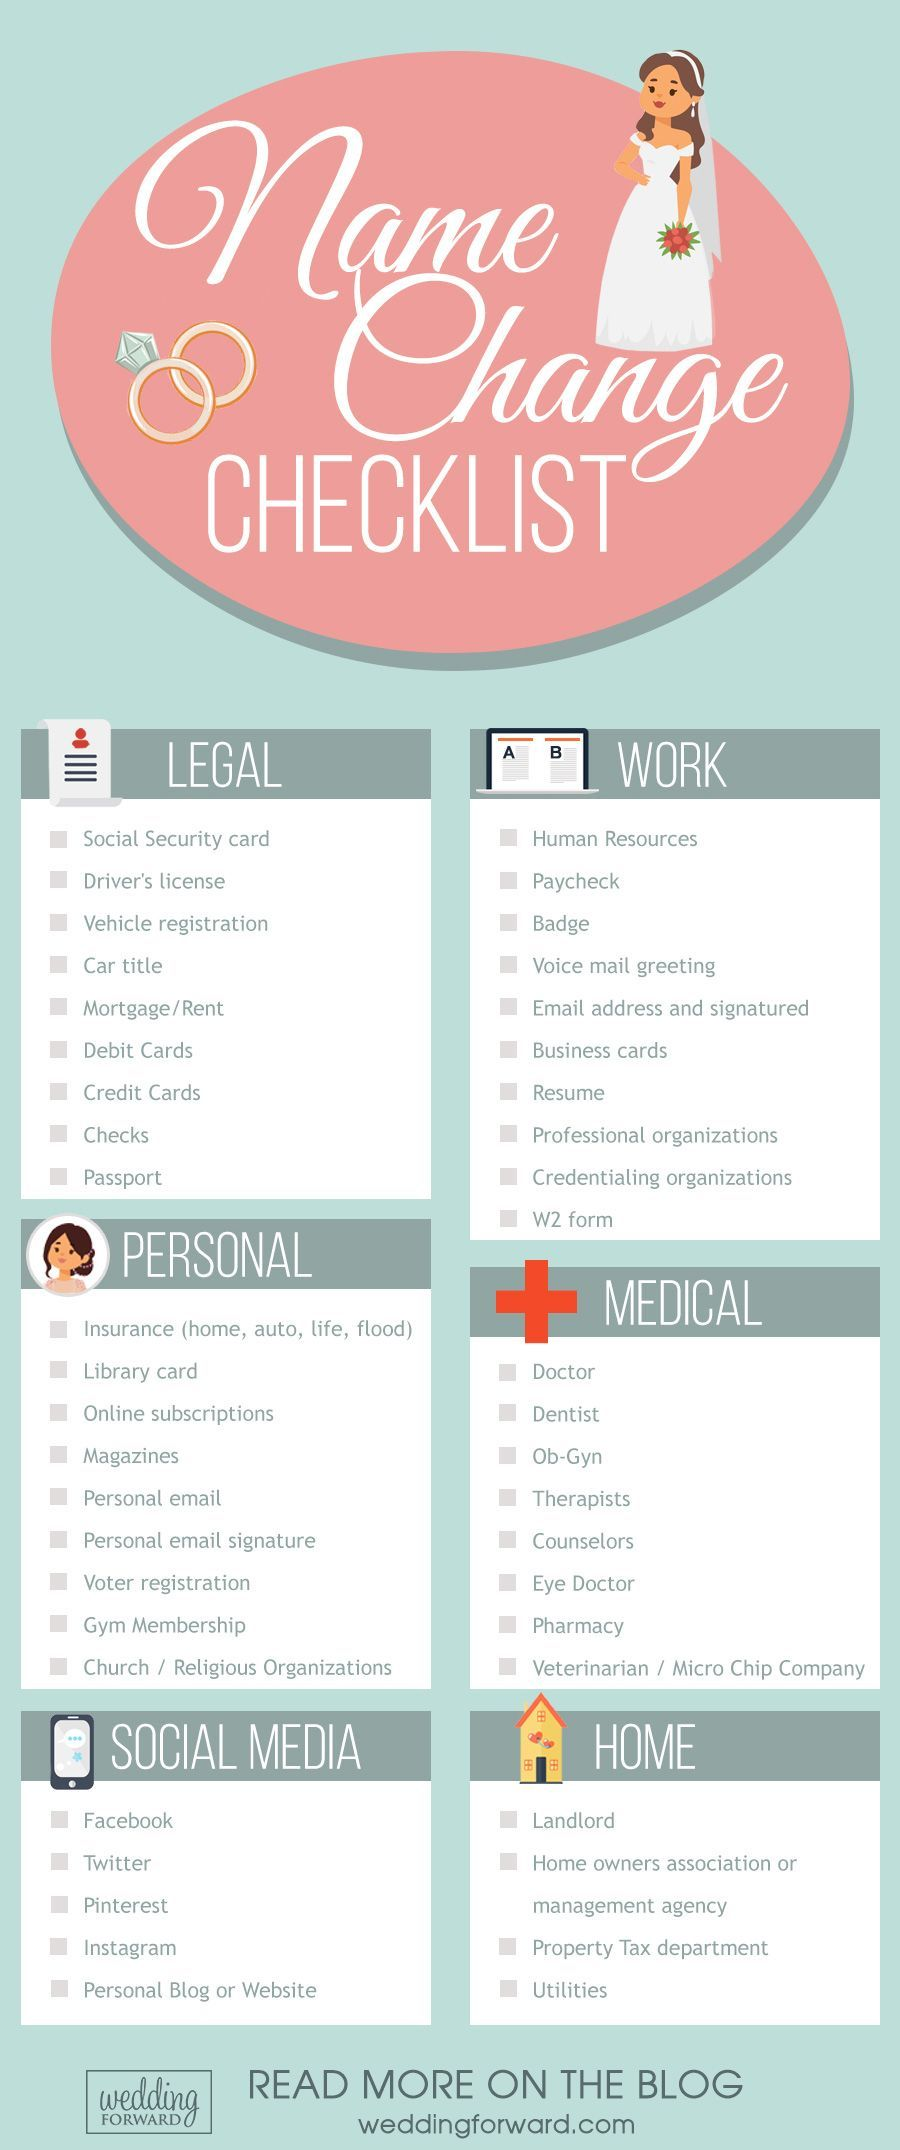 Must Have Wedding Planning Checklists For Every Bride